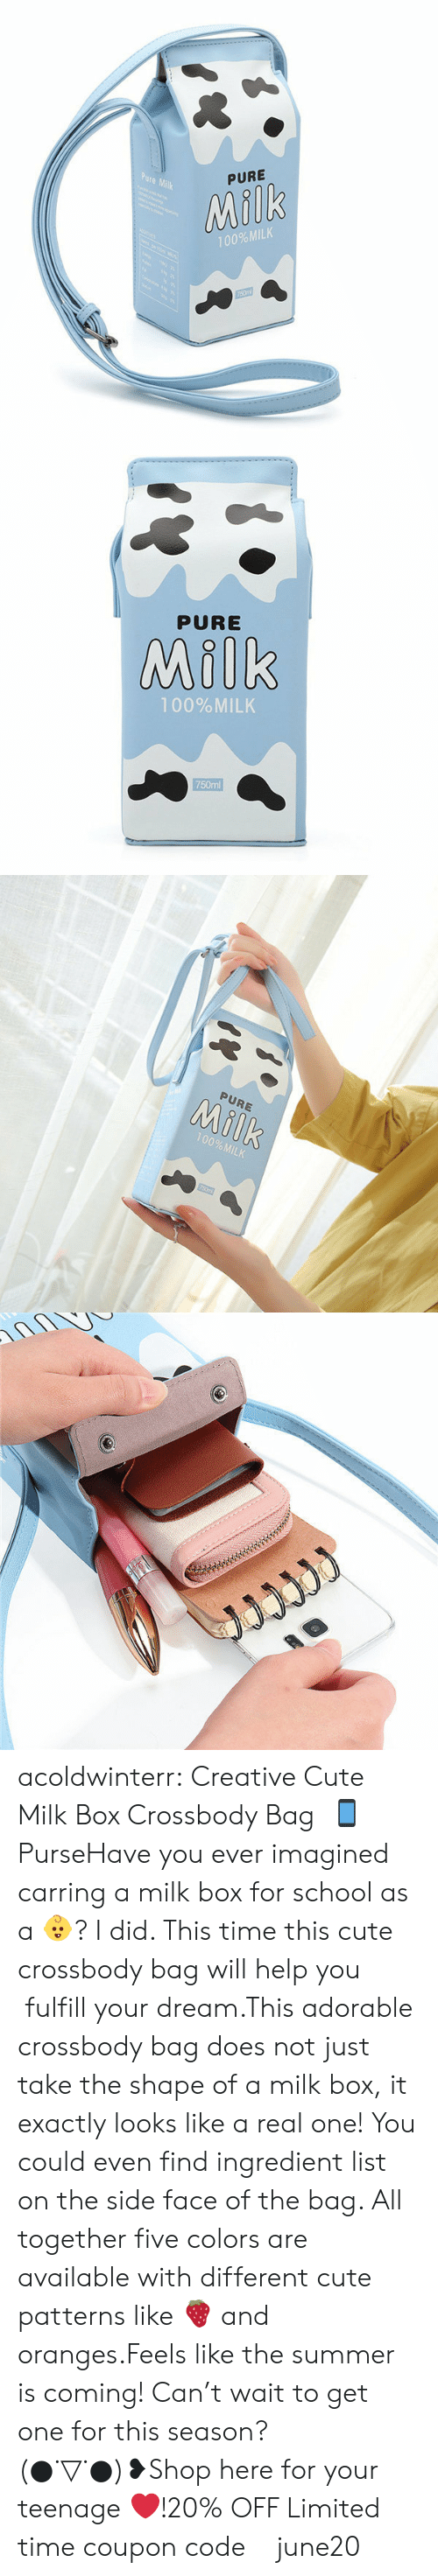 Cute, School, and Tumblr: Pure Milk  PURE  Milk  100%MILK  750ml   PURE  Milk  100%MILK  750ml   PURE  Milk  100%MILK  750m   JJJww acoldwinterr:  Creative Cute Milk Box Crossbody Bag  📱 PurseHave you ever imagined carring a milk box for school as a 👶? I did. This time this cute crossbody bag will help you  fulfill your dream.This adorable crossbody bag does not just take the shape of a milk box, it exactly looks like a real one! You could even find ingredient list on the side face of the bag. All together five colors are available with different cute patterns like 🍓 and oranges.Feels like the summer is coming! Can't wait to get one for this season?   (●˙▽˙●)❥Shop here for your teenage ❤️!20% OFF Limited time coupon code : june20